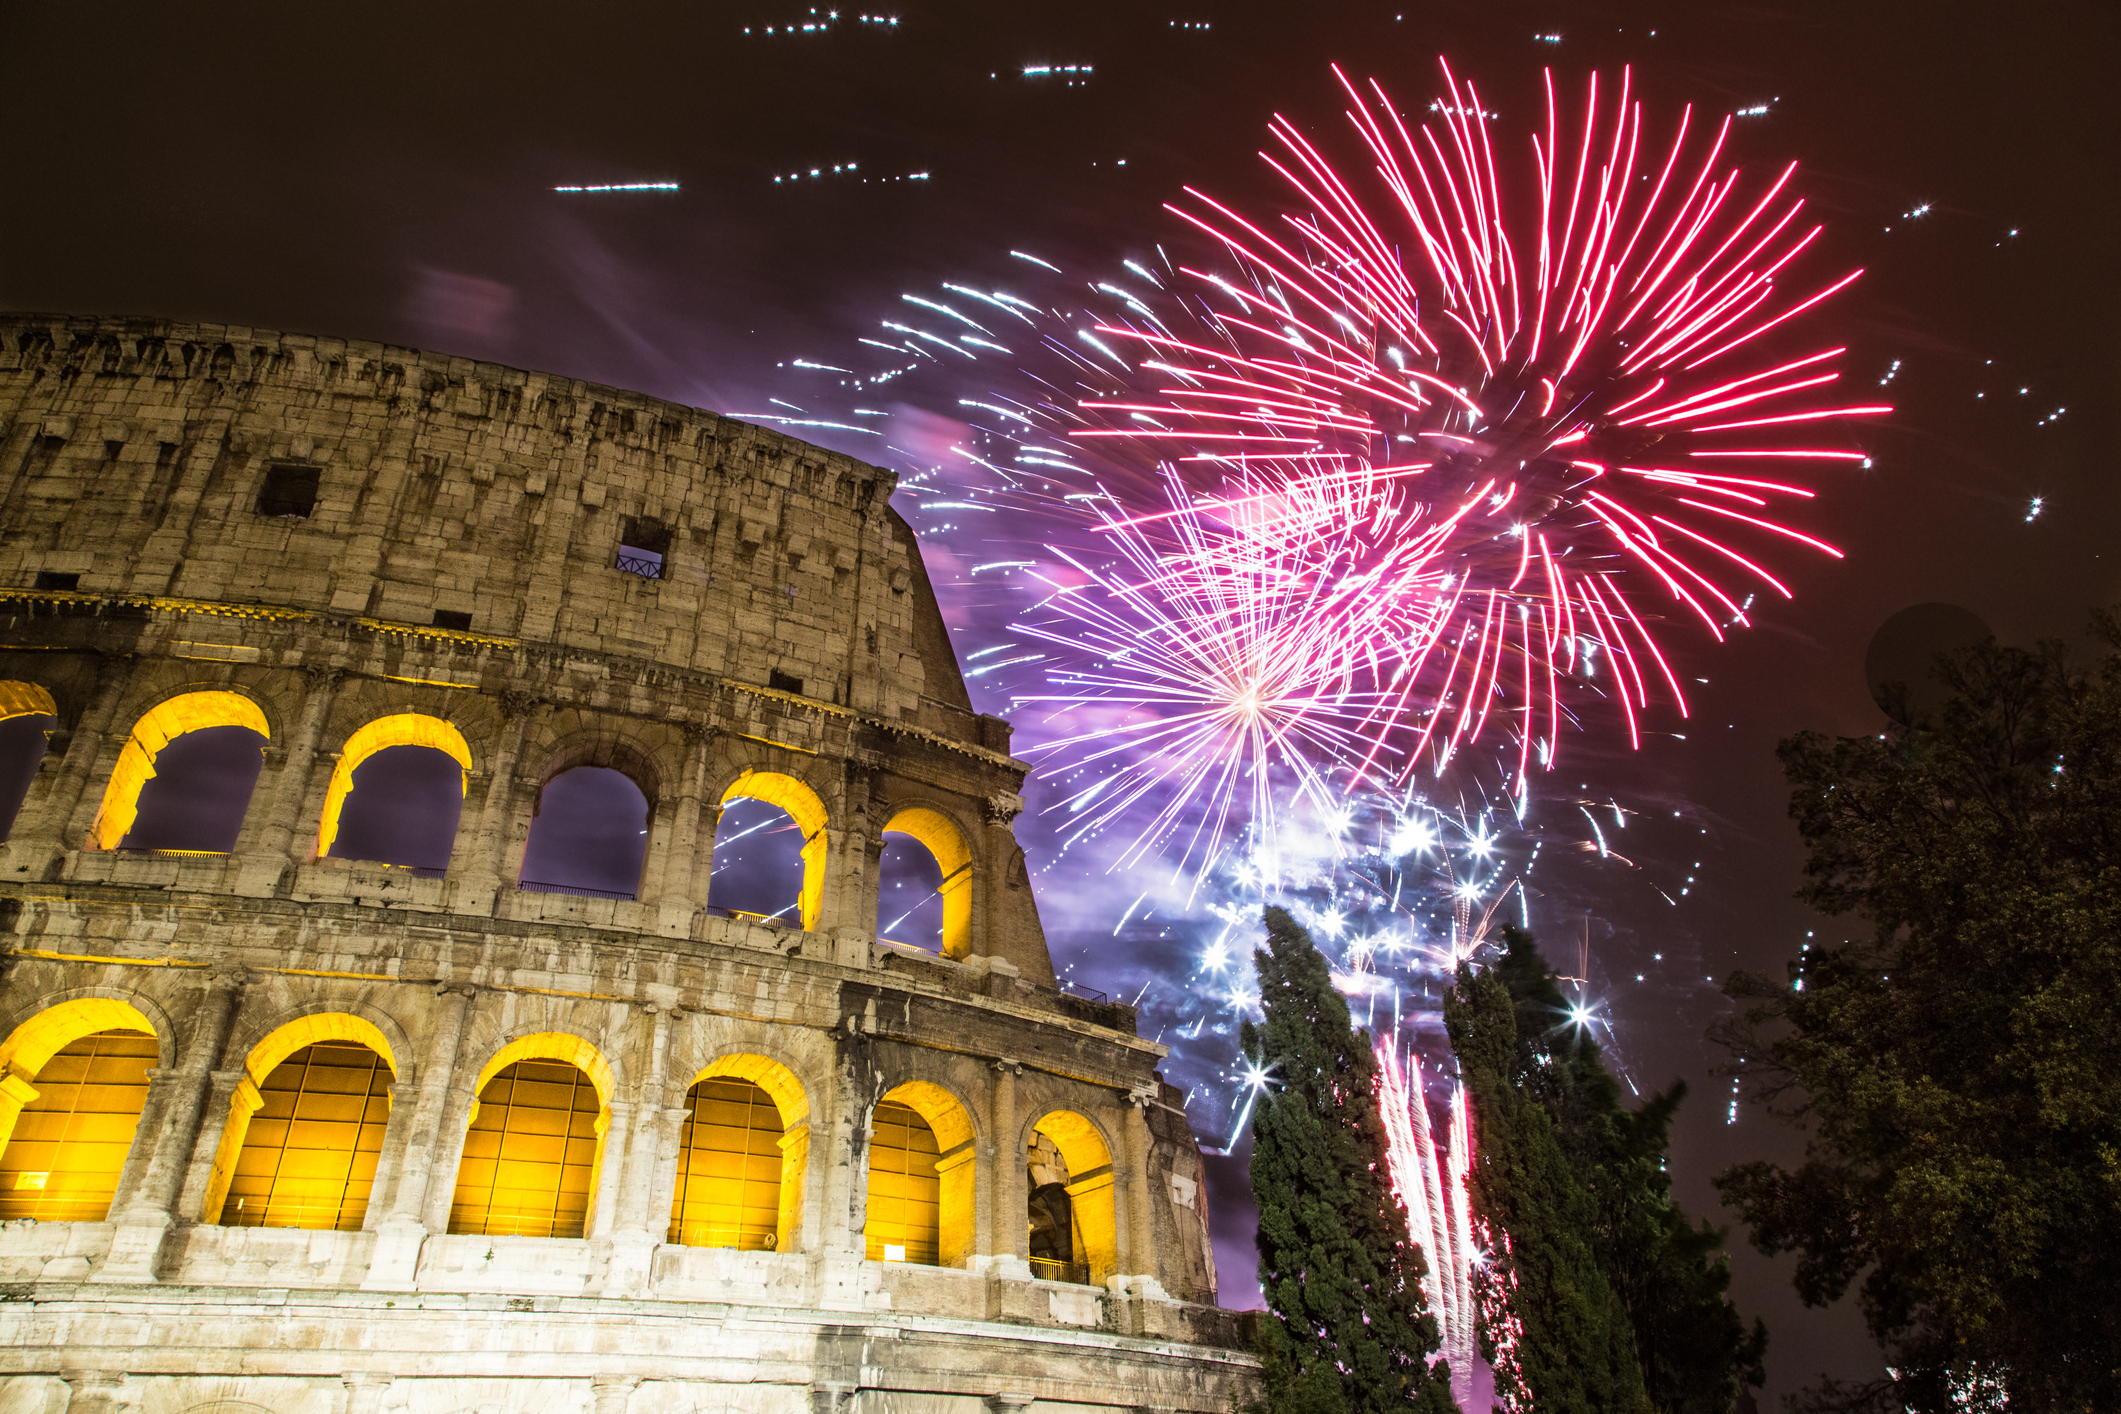 New Year's fireworks in the sky by the Colosseum in Rome : Stock Photo